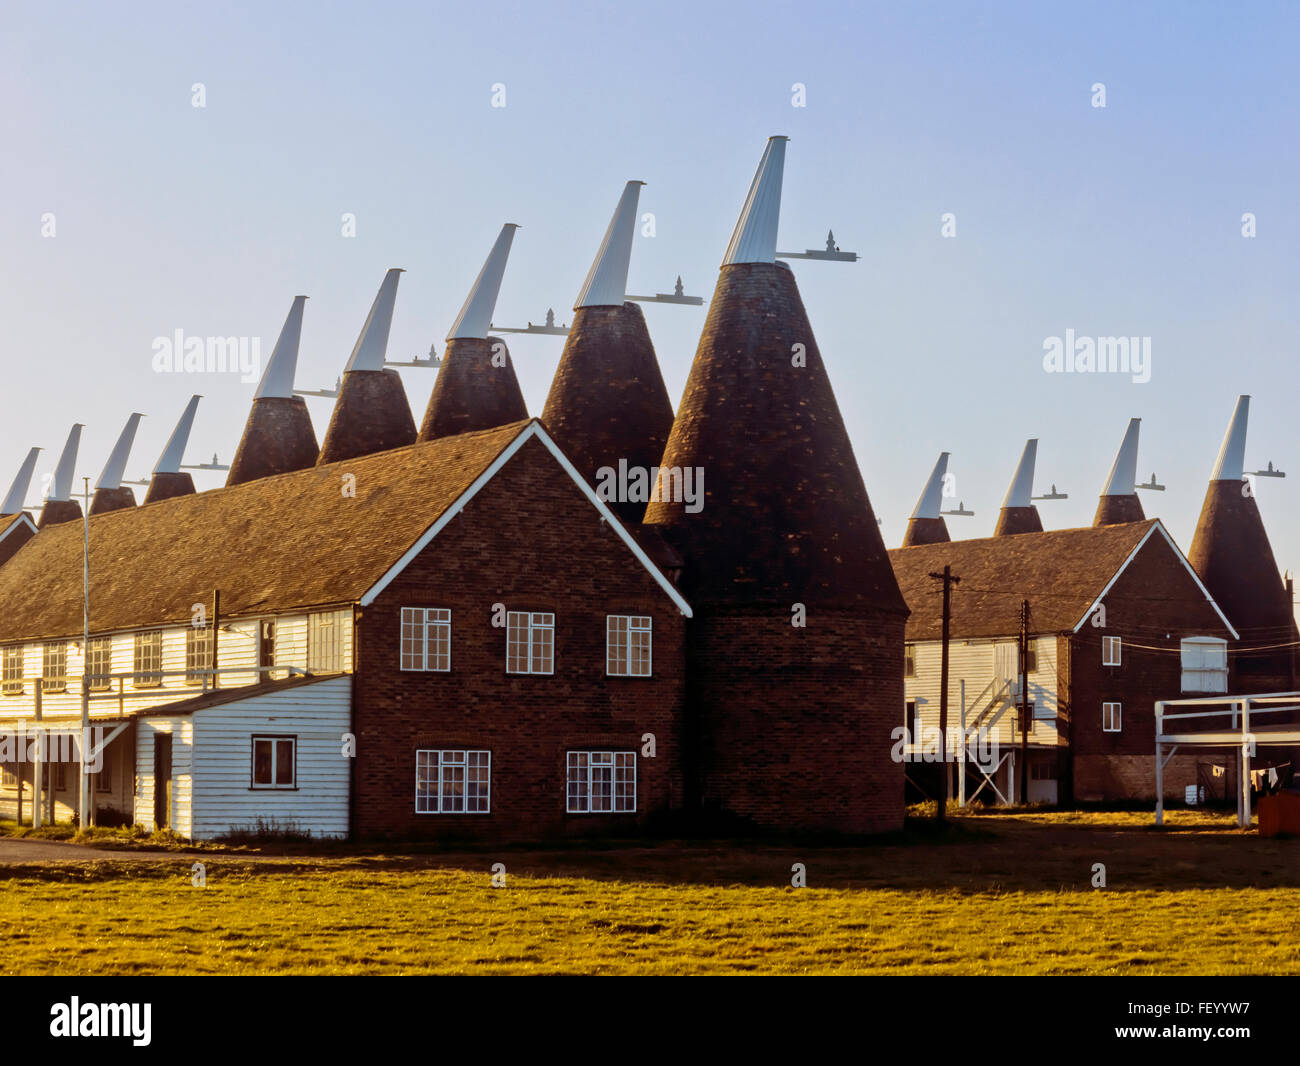 AA 7280. Archival 1970s, Oast Houses, Beltring, Kent, England - Stock Image